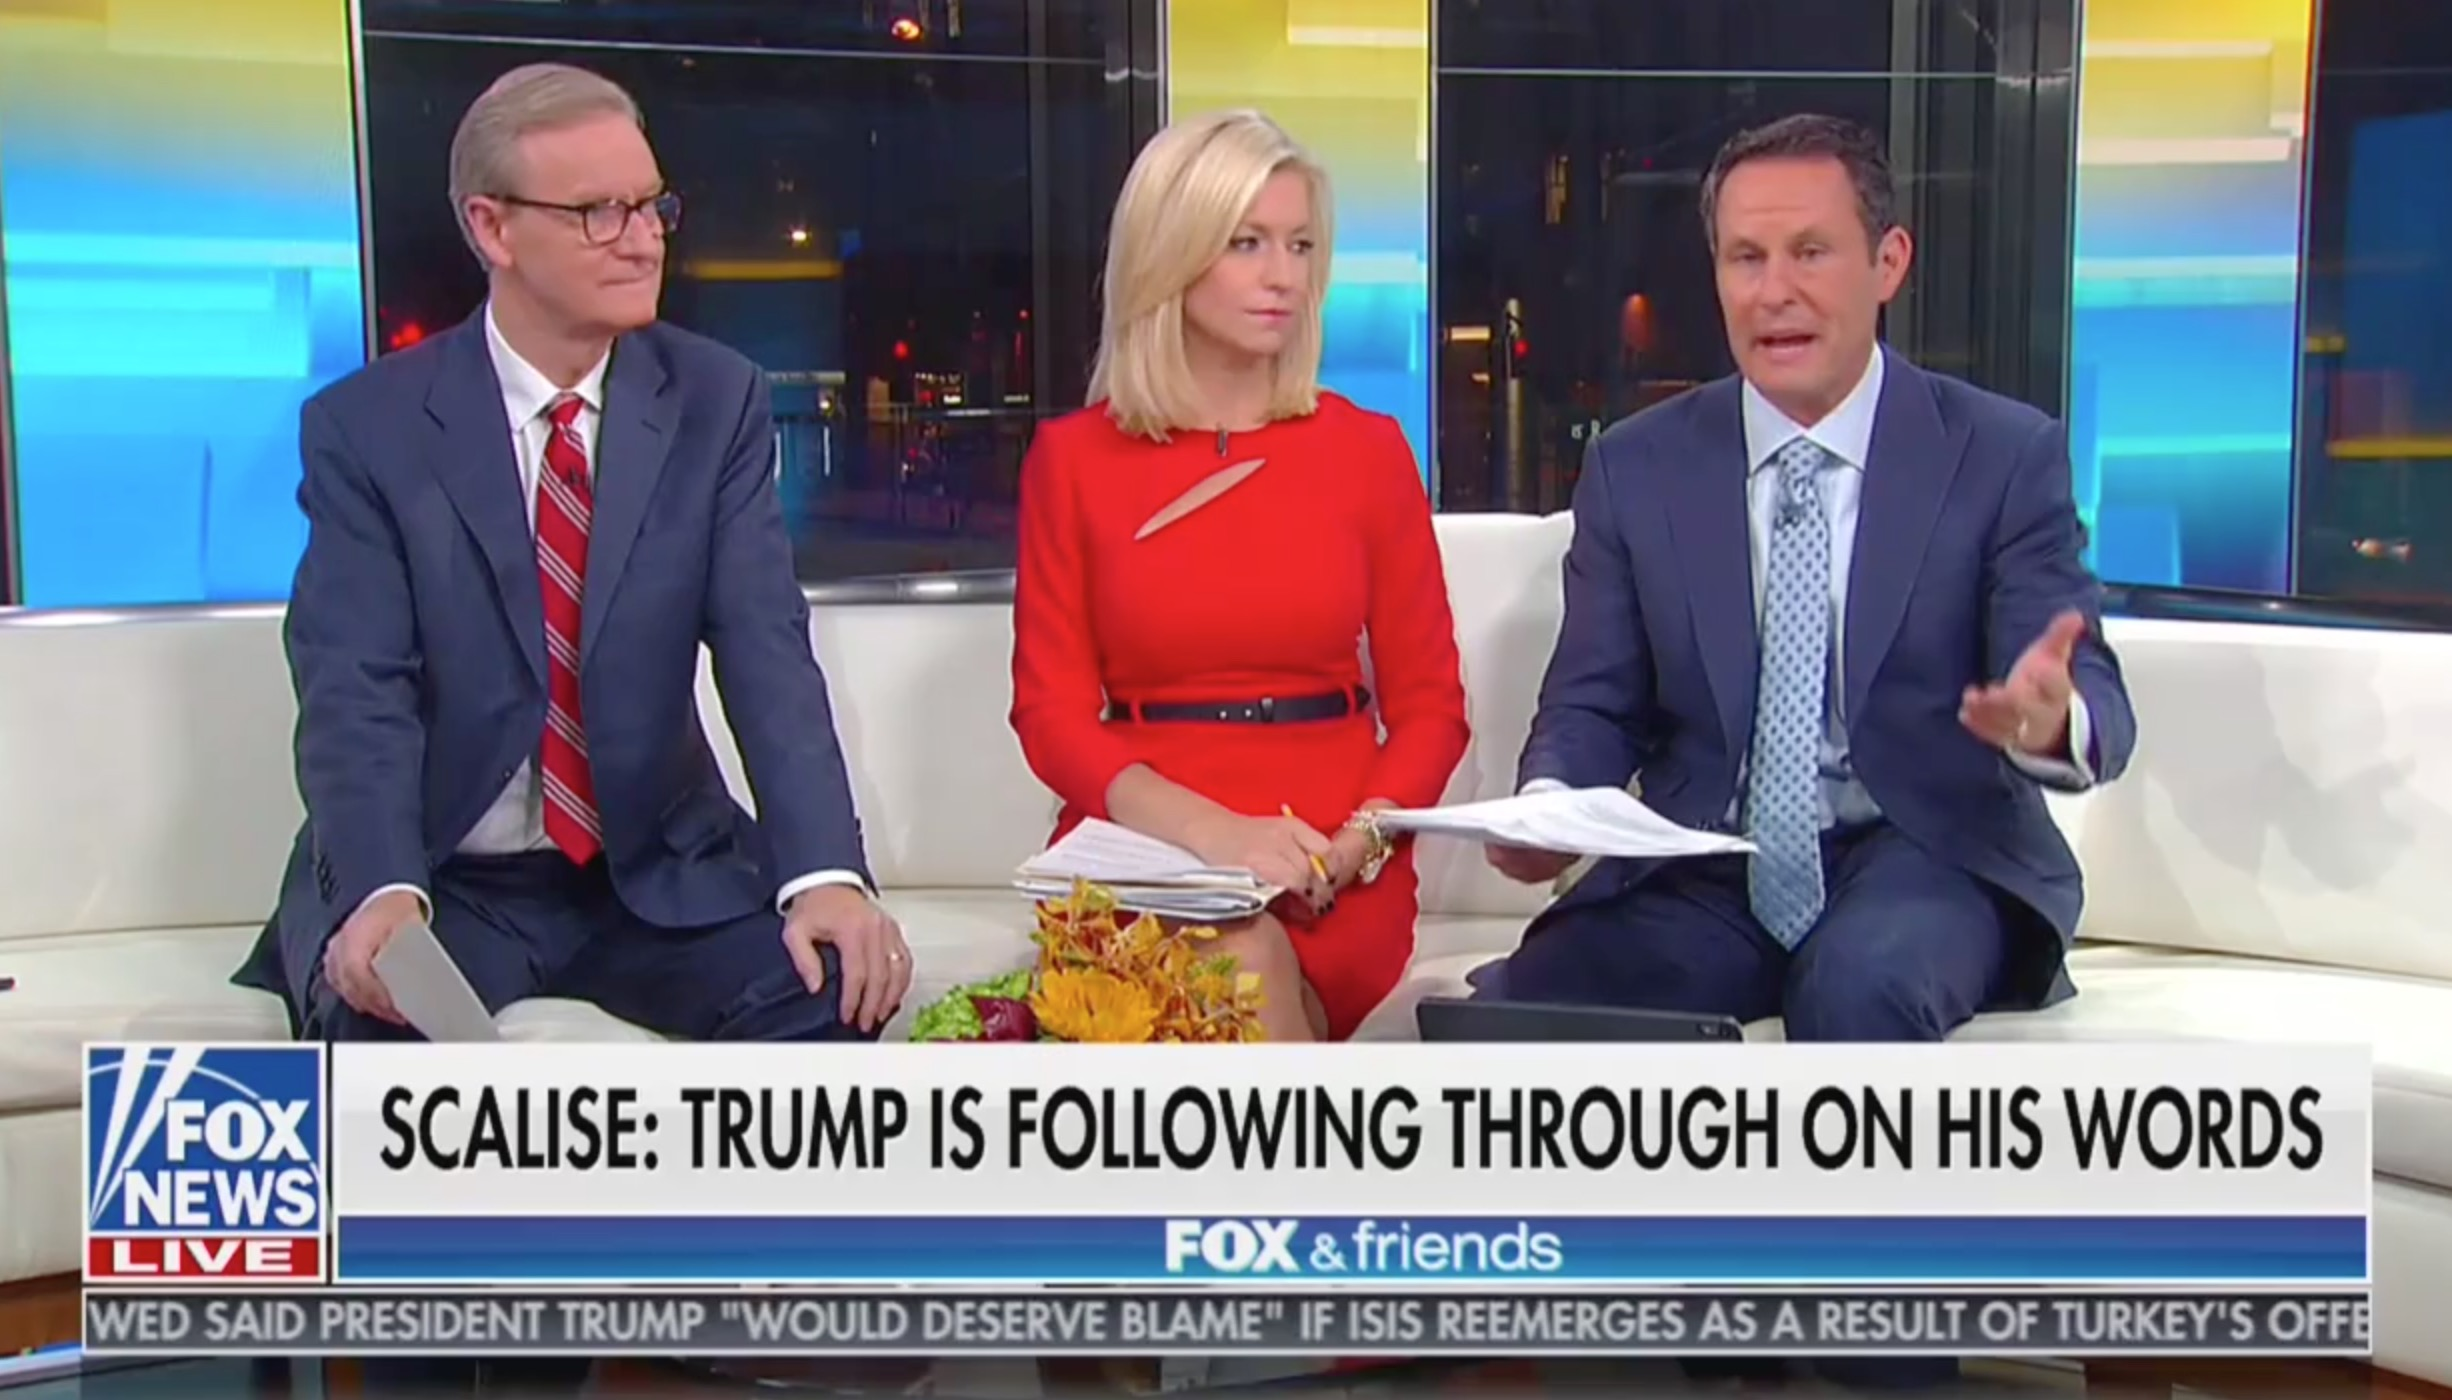 Fox & Friends Hammers Pelosi, Dems Over White House Meeting Collapse: 'Why Can't They Sit Down and Talk?'